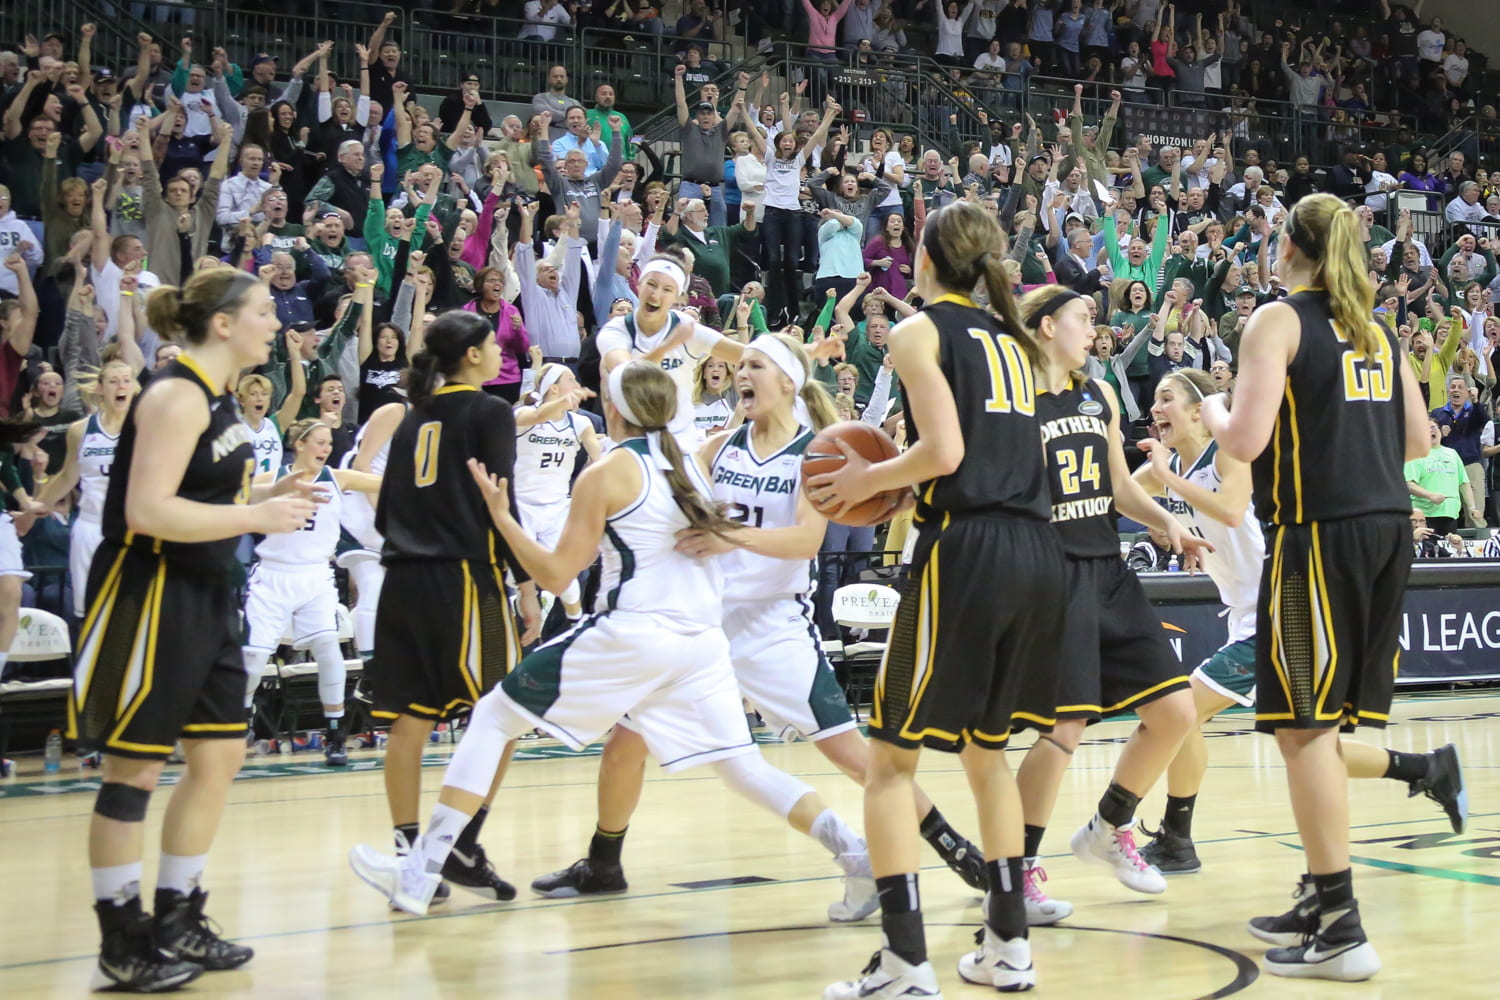 1 - Jubilation at Women's Basketball